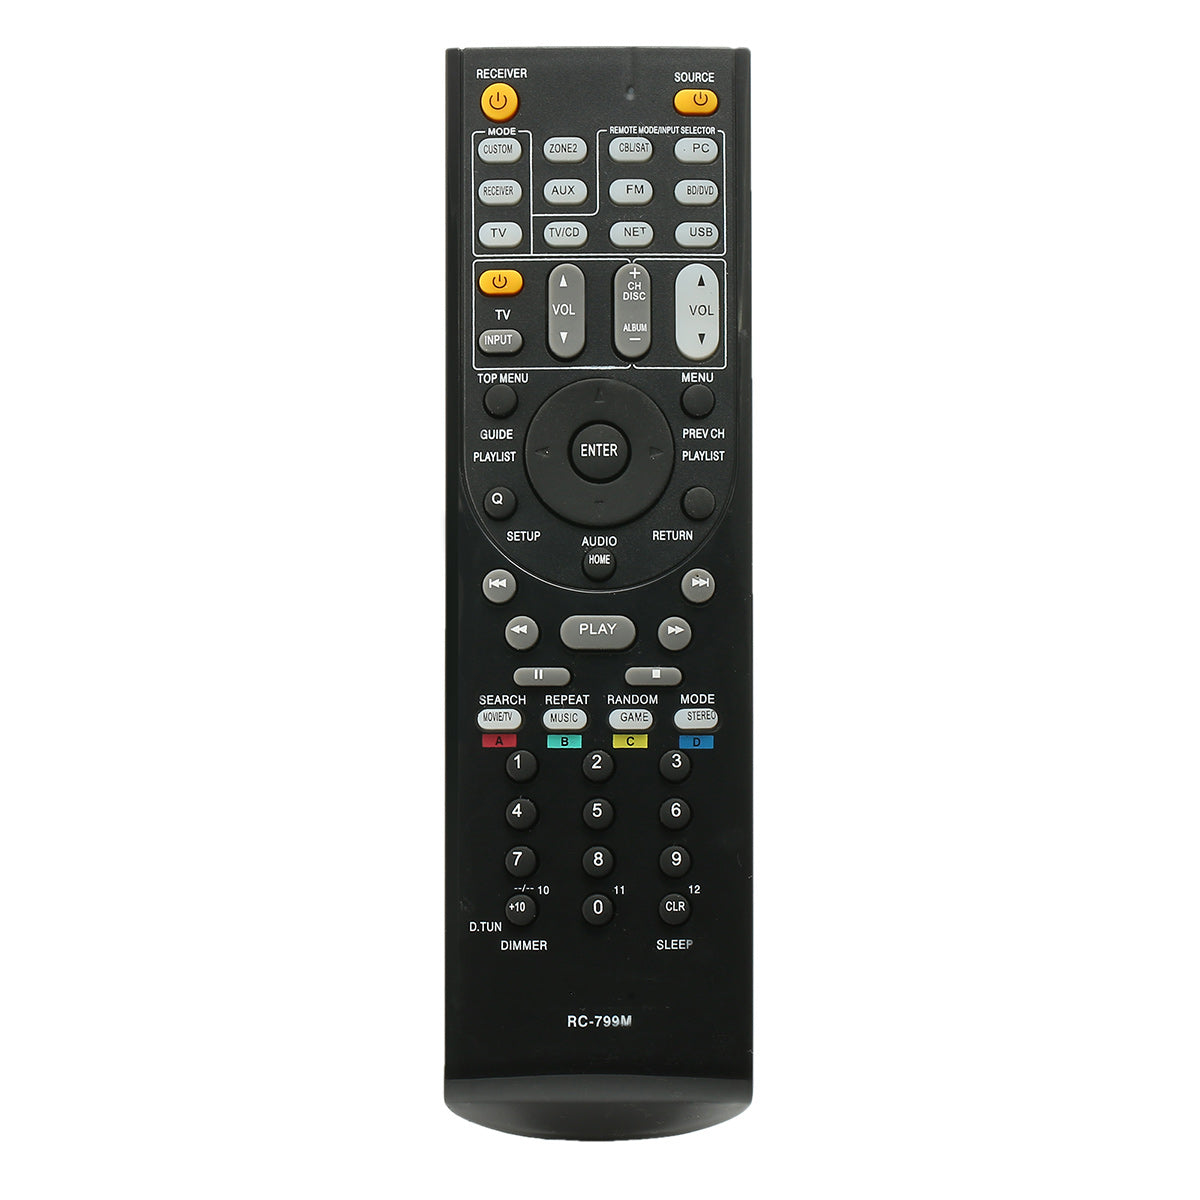 Remote Control for ONKYO HT-R391 HT-R558 HT-R590 HT-R591